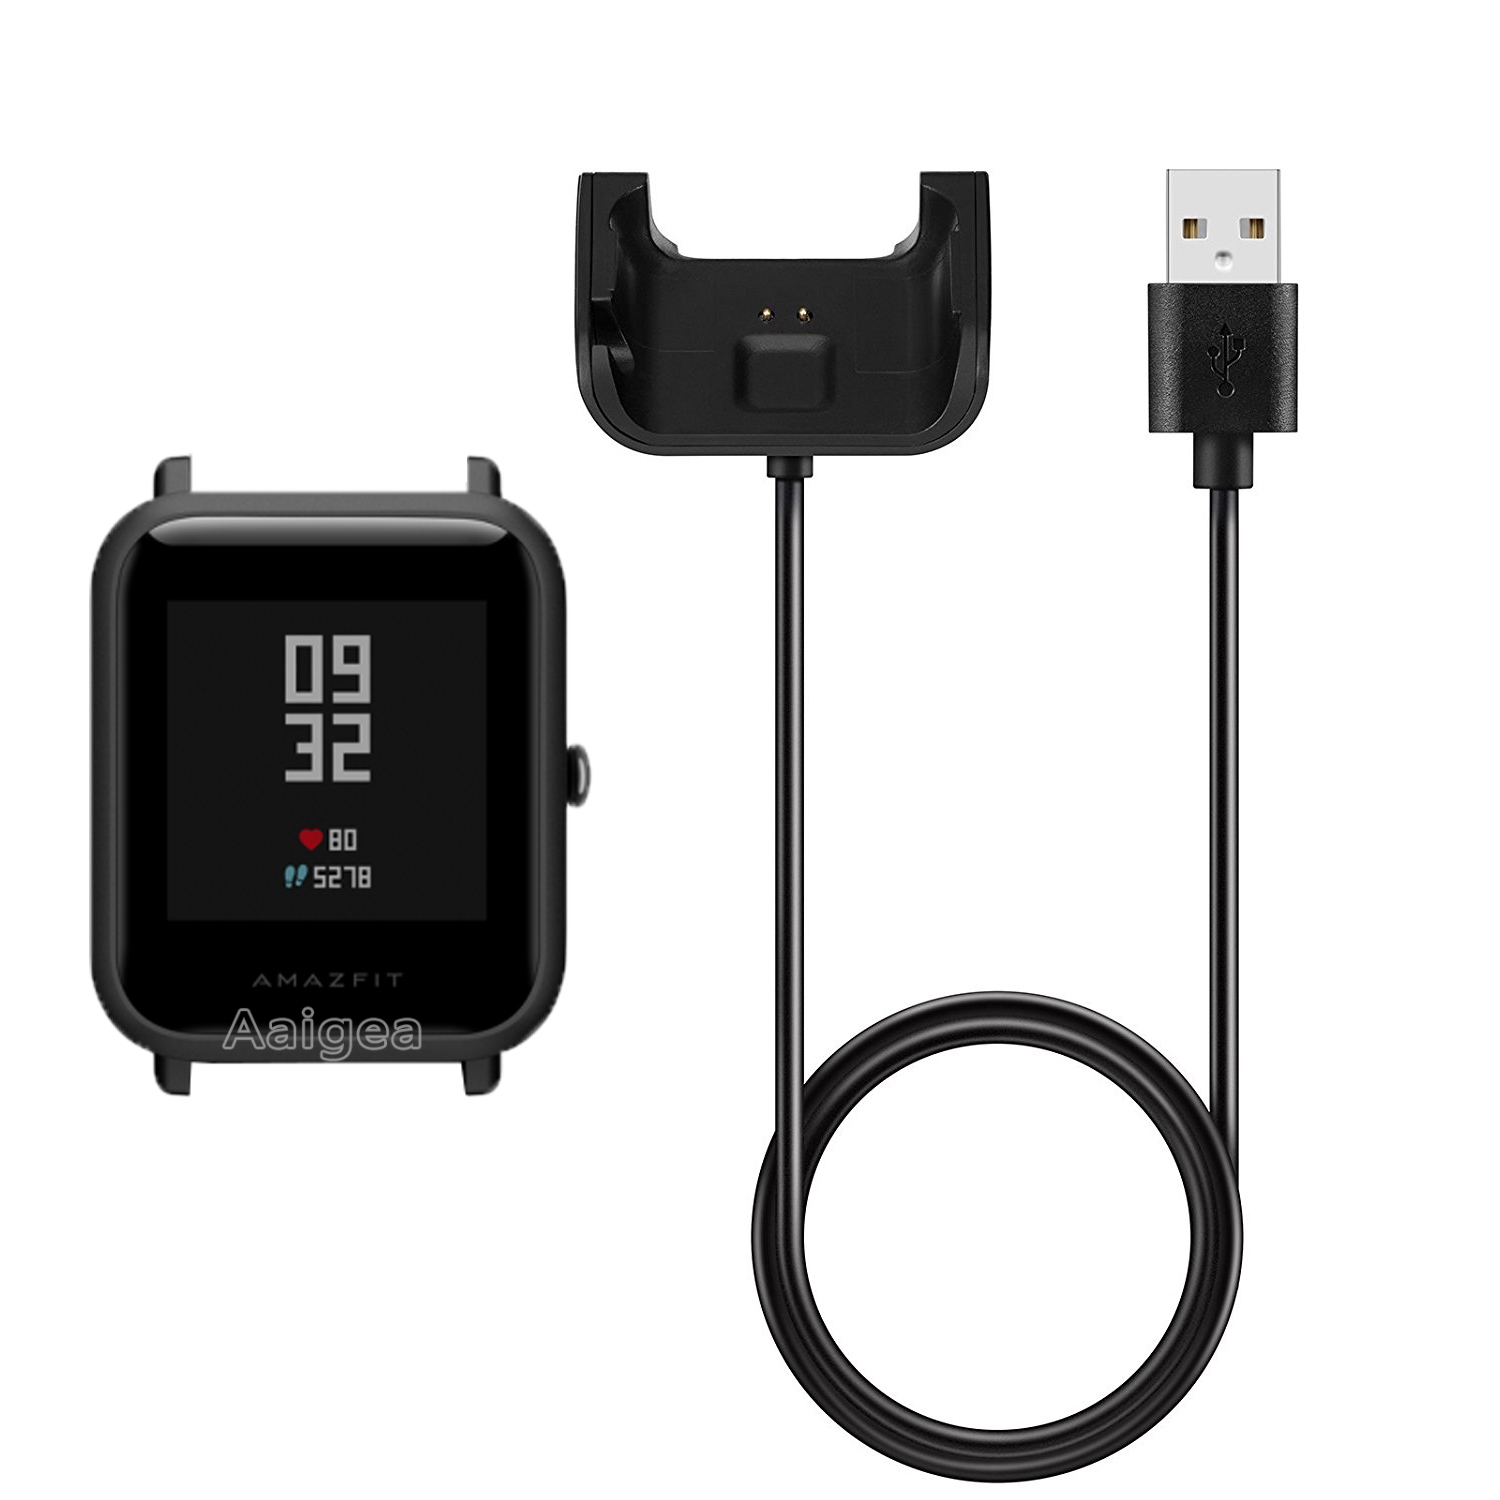 USB Charging Cable Dock for Xiaomi Huami Bip Bit Pace Youth Watch Charger 1M Portable Charger Data Cable Charging Dock Cradle usb charging cable dock for xiaomi huami bip bit pace youth watch charger 1m portable charger data cable charging dock cradle